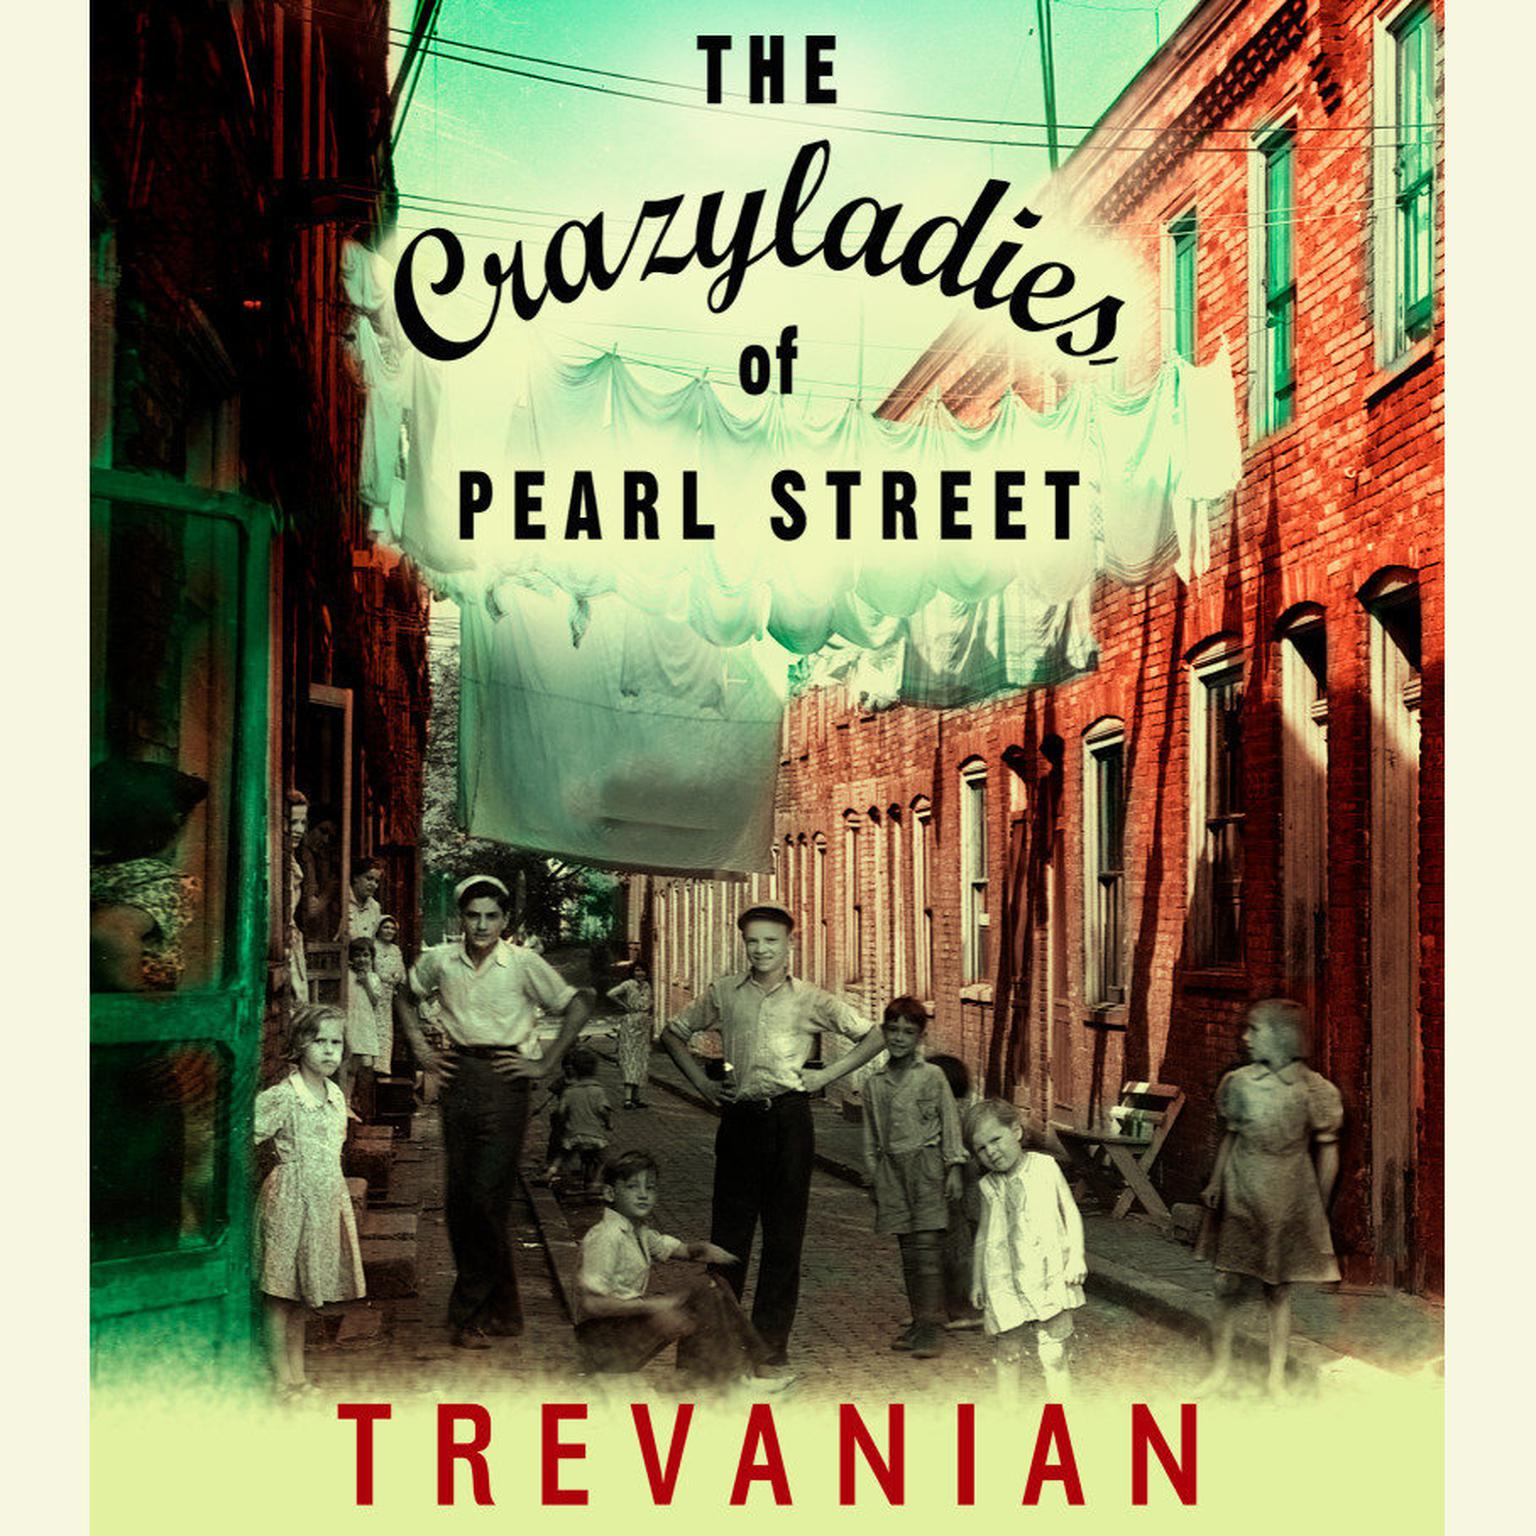 Printable The Crazyladies of Pearl Street: A Novel Audiobook Cover Art